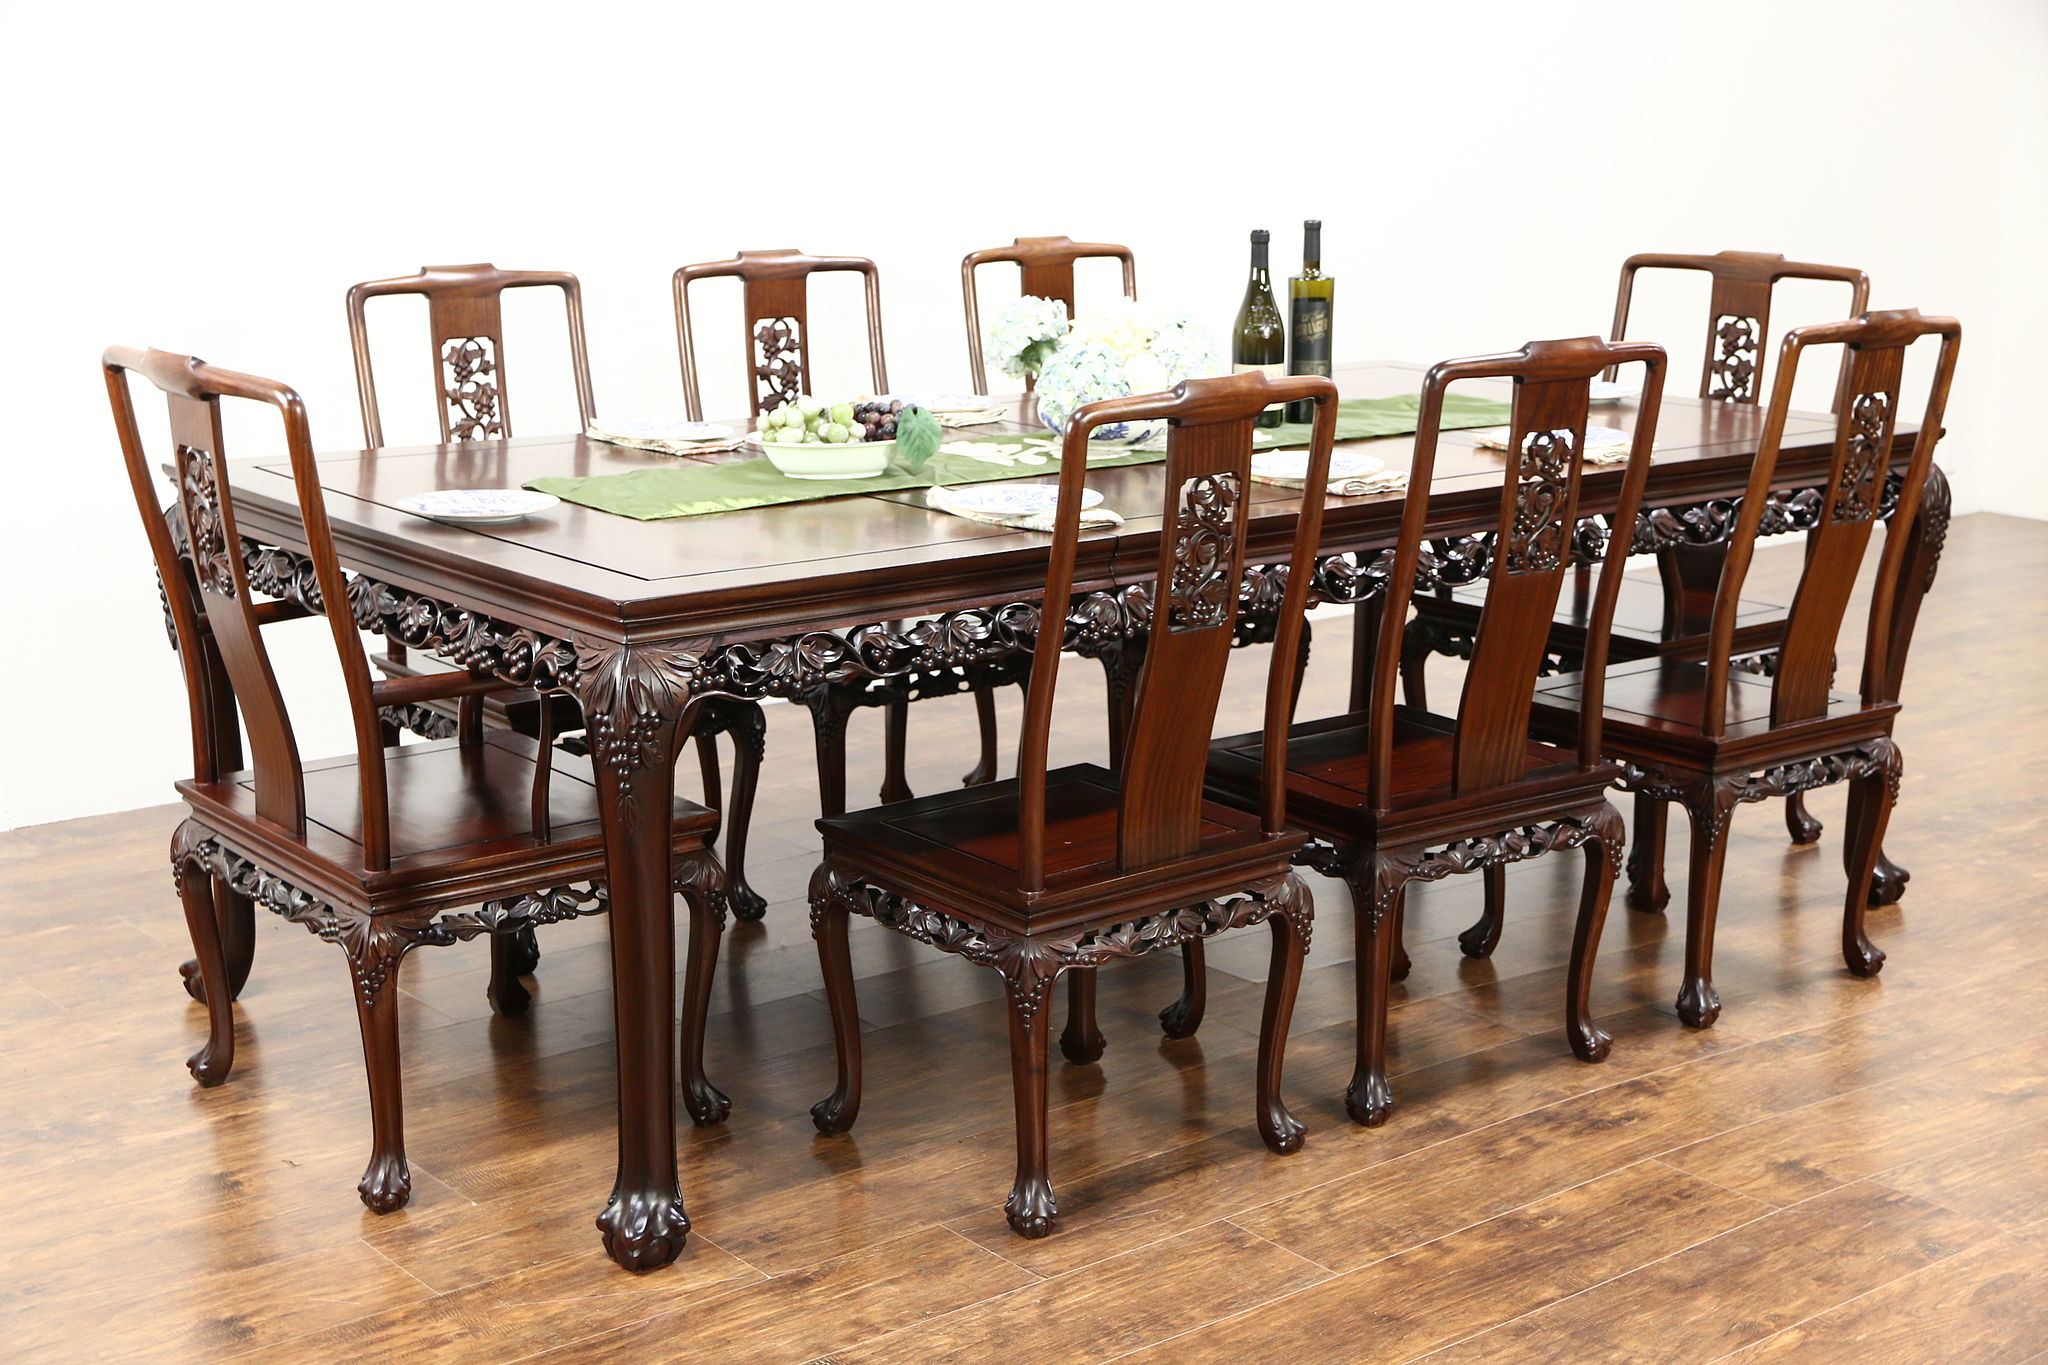 Chinese Rosewood Vintage Dining Set, Table, 8 Chairs, Hand Carved Grapevine